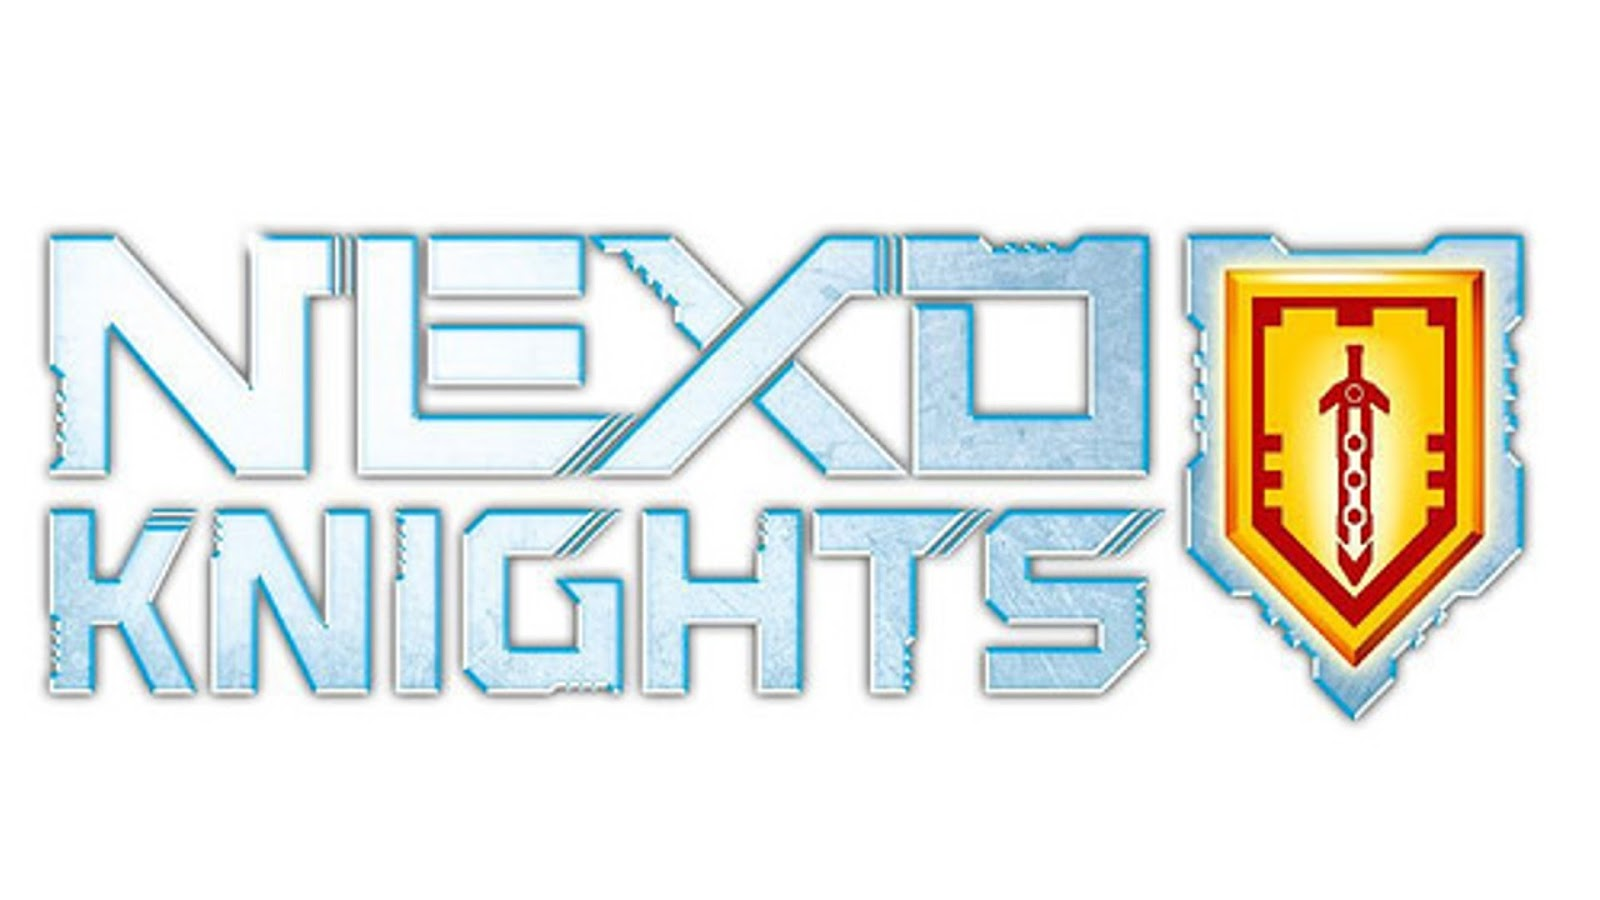 Ps Vita Roundup Okay How Long Until A Lego Nexo Knights Game Arrives Superbeat Xonic Region 3 English The Play Sets Scroll Down Past Really Fun Looking Mixels Arrive Early Next Year But Games Cant Be Far Behind Lets Hope Gets To